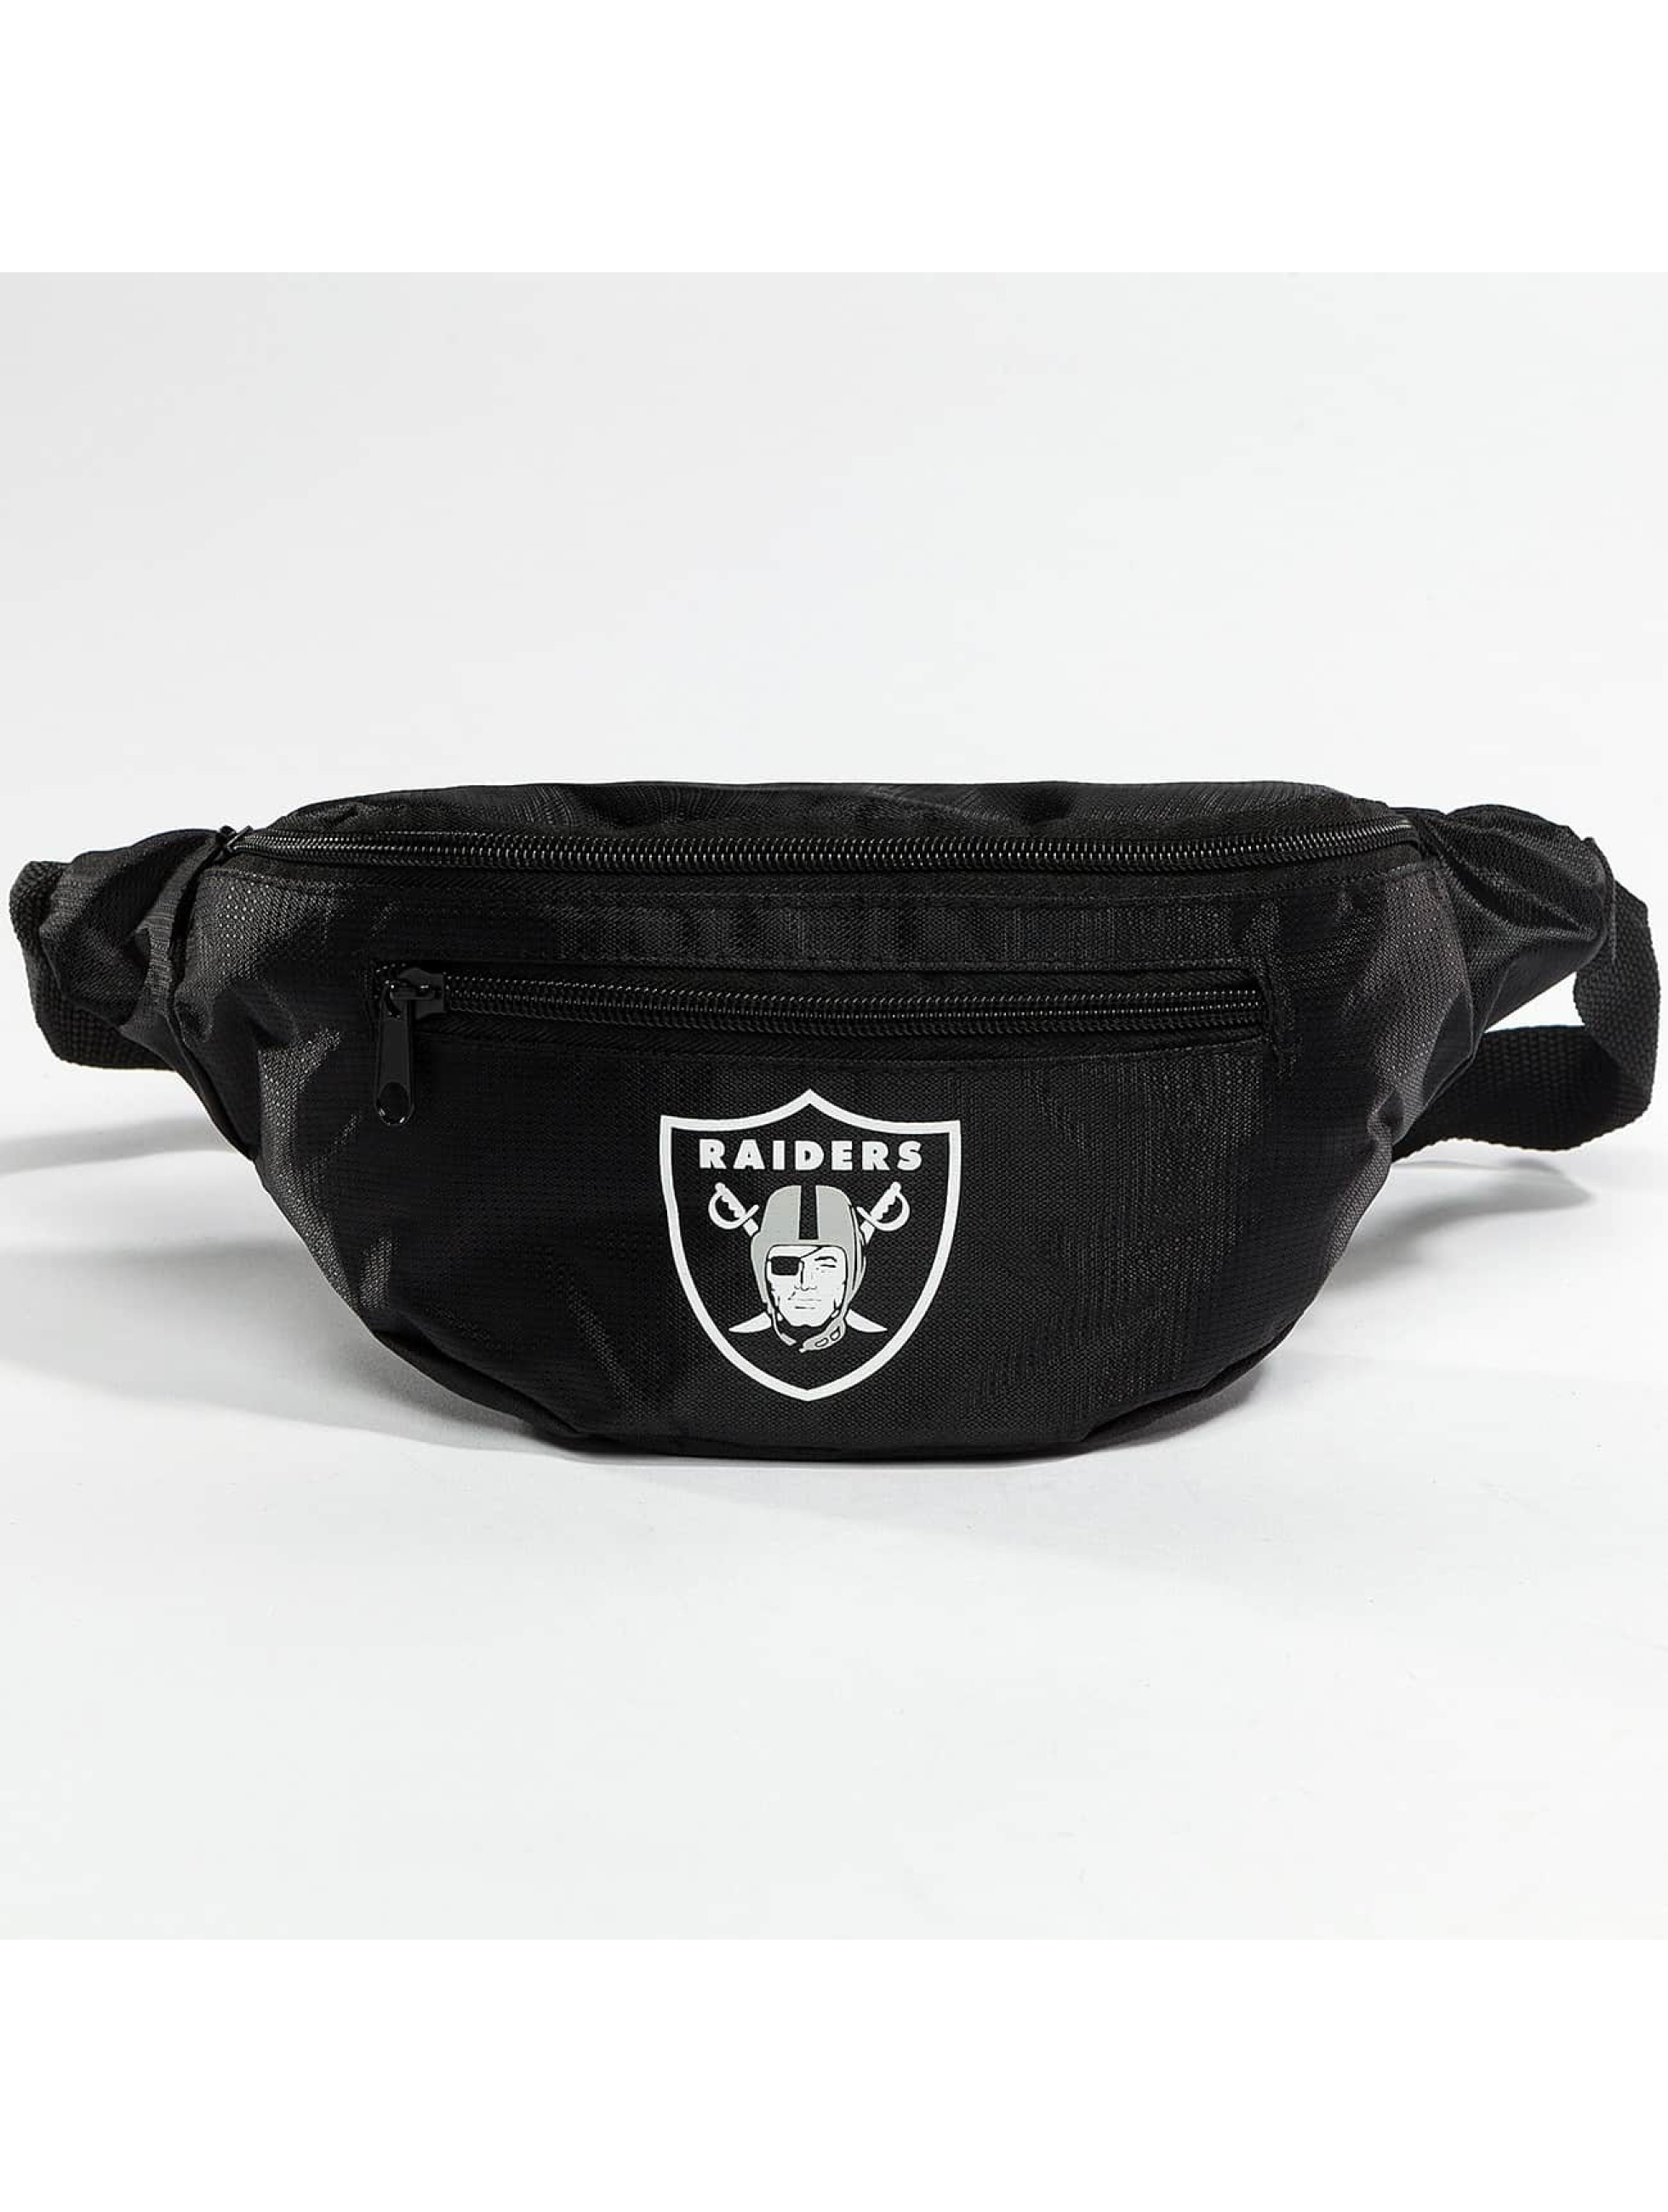 Forever Collectibles Sac NFL Oakland Raiders noir